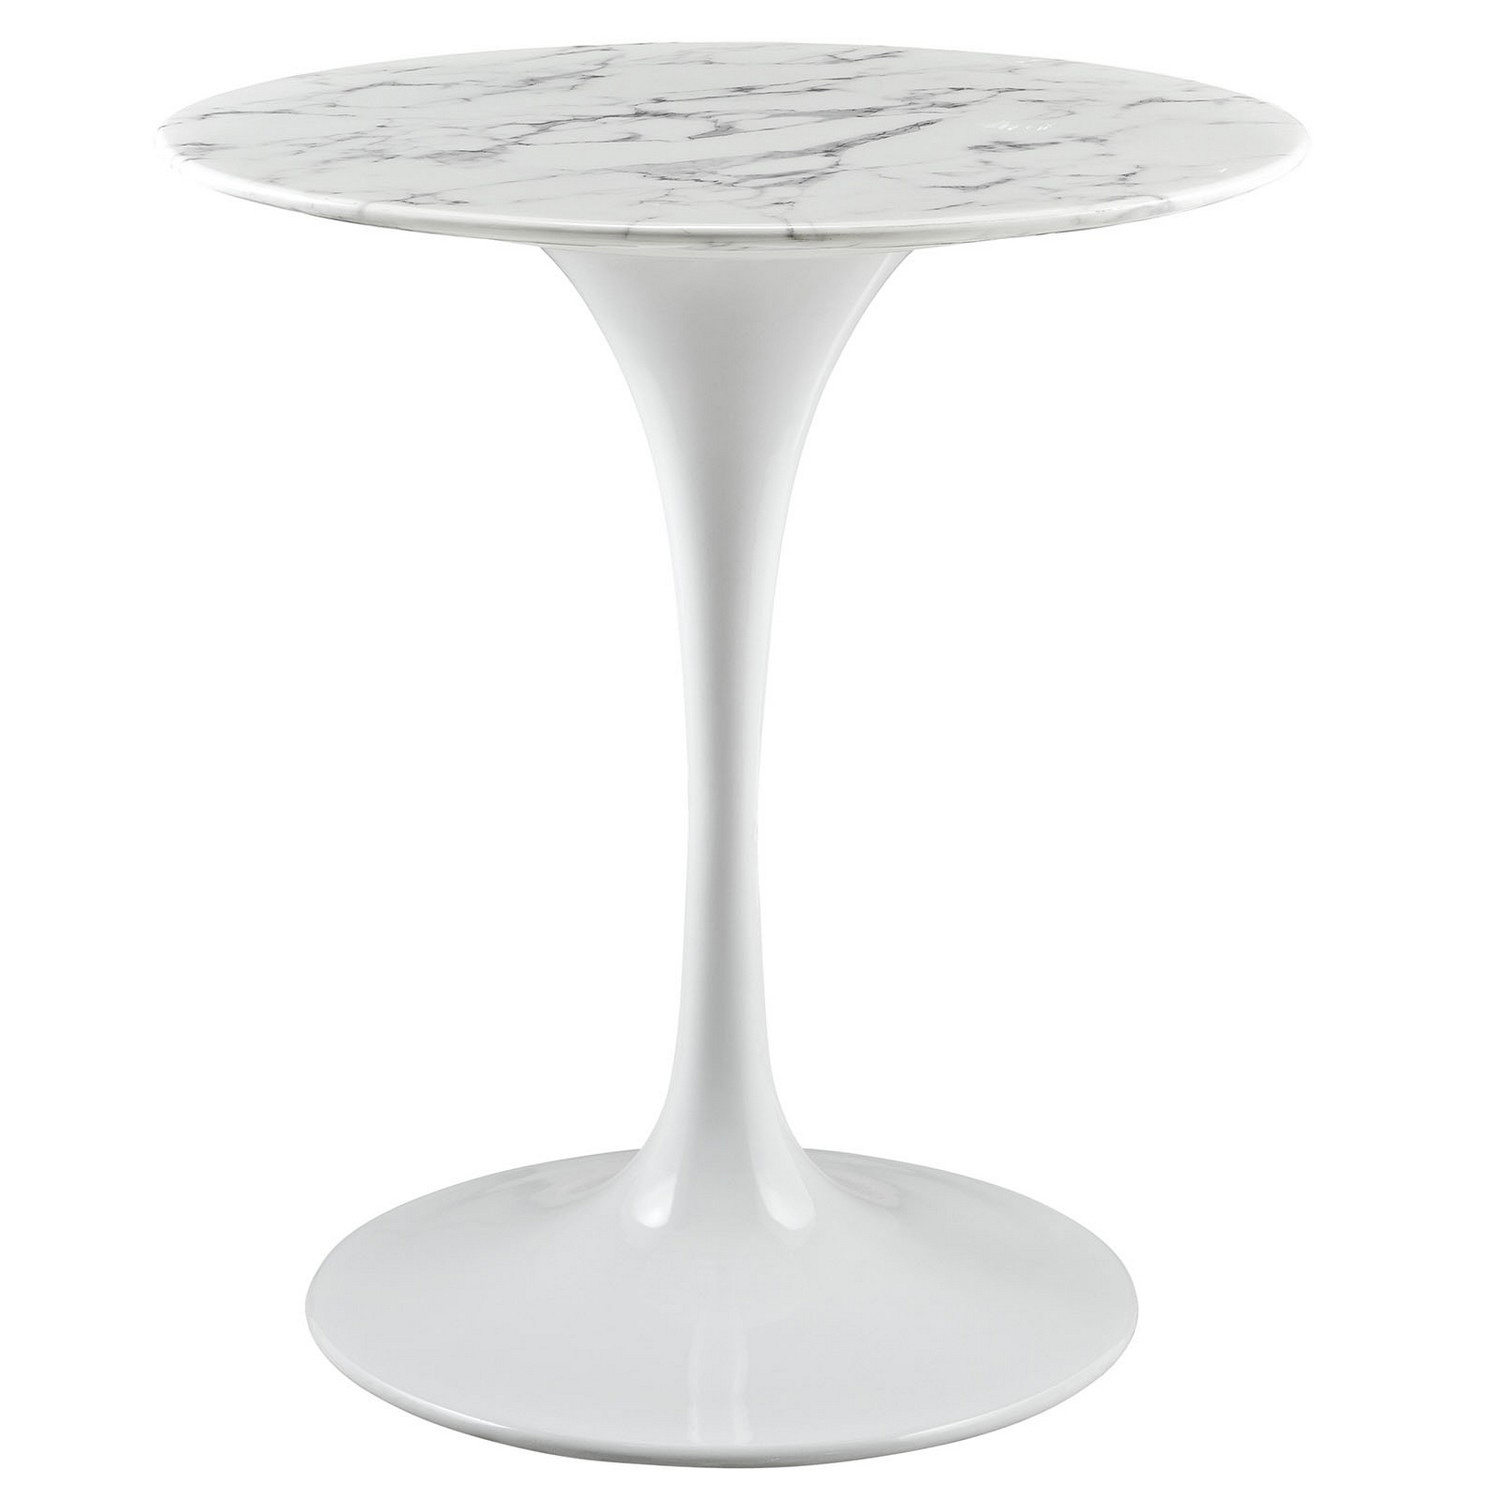 Modway Lippa 28 Artificial Marble Side Table - White